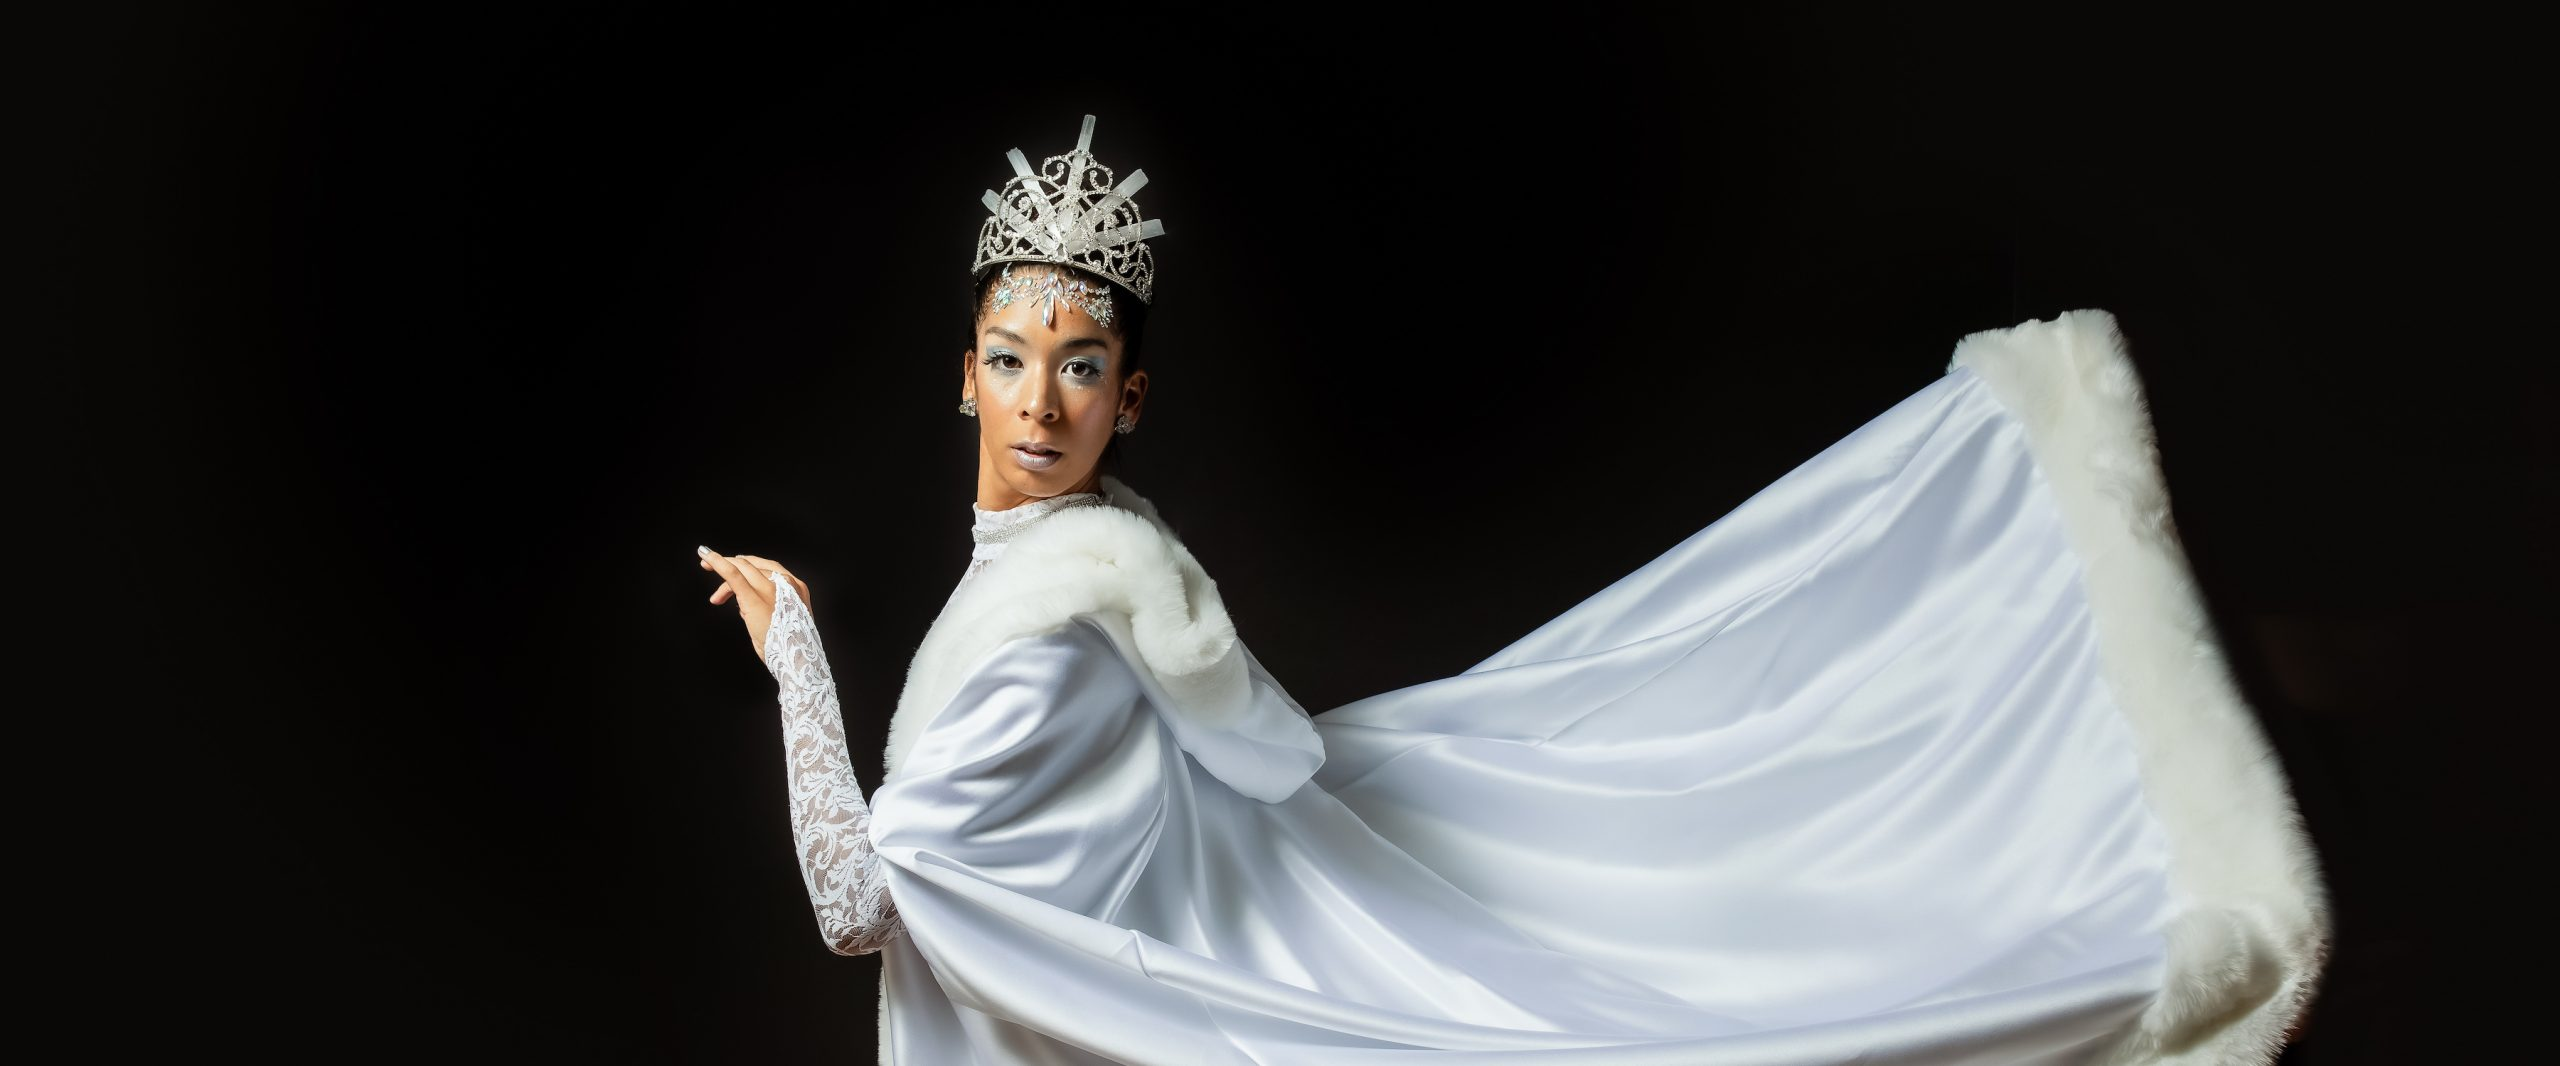 Snow Queen with Tiara looks over her left shoulder while her giant white cape suspends behind her